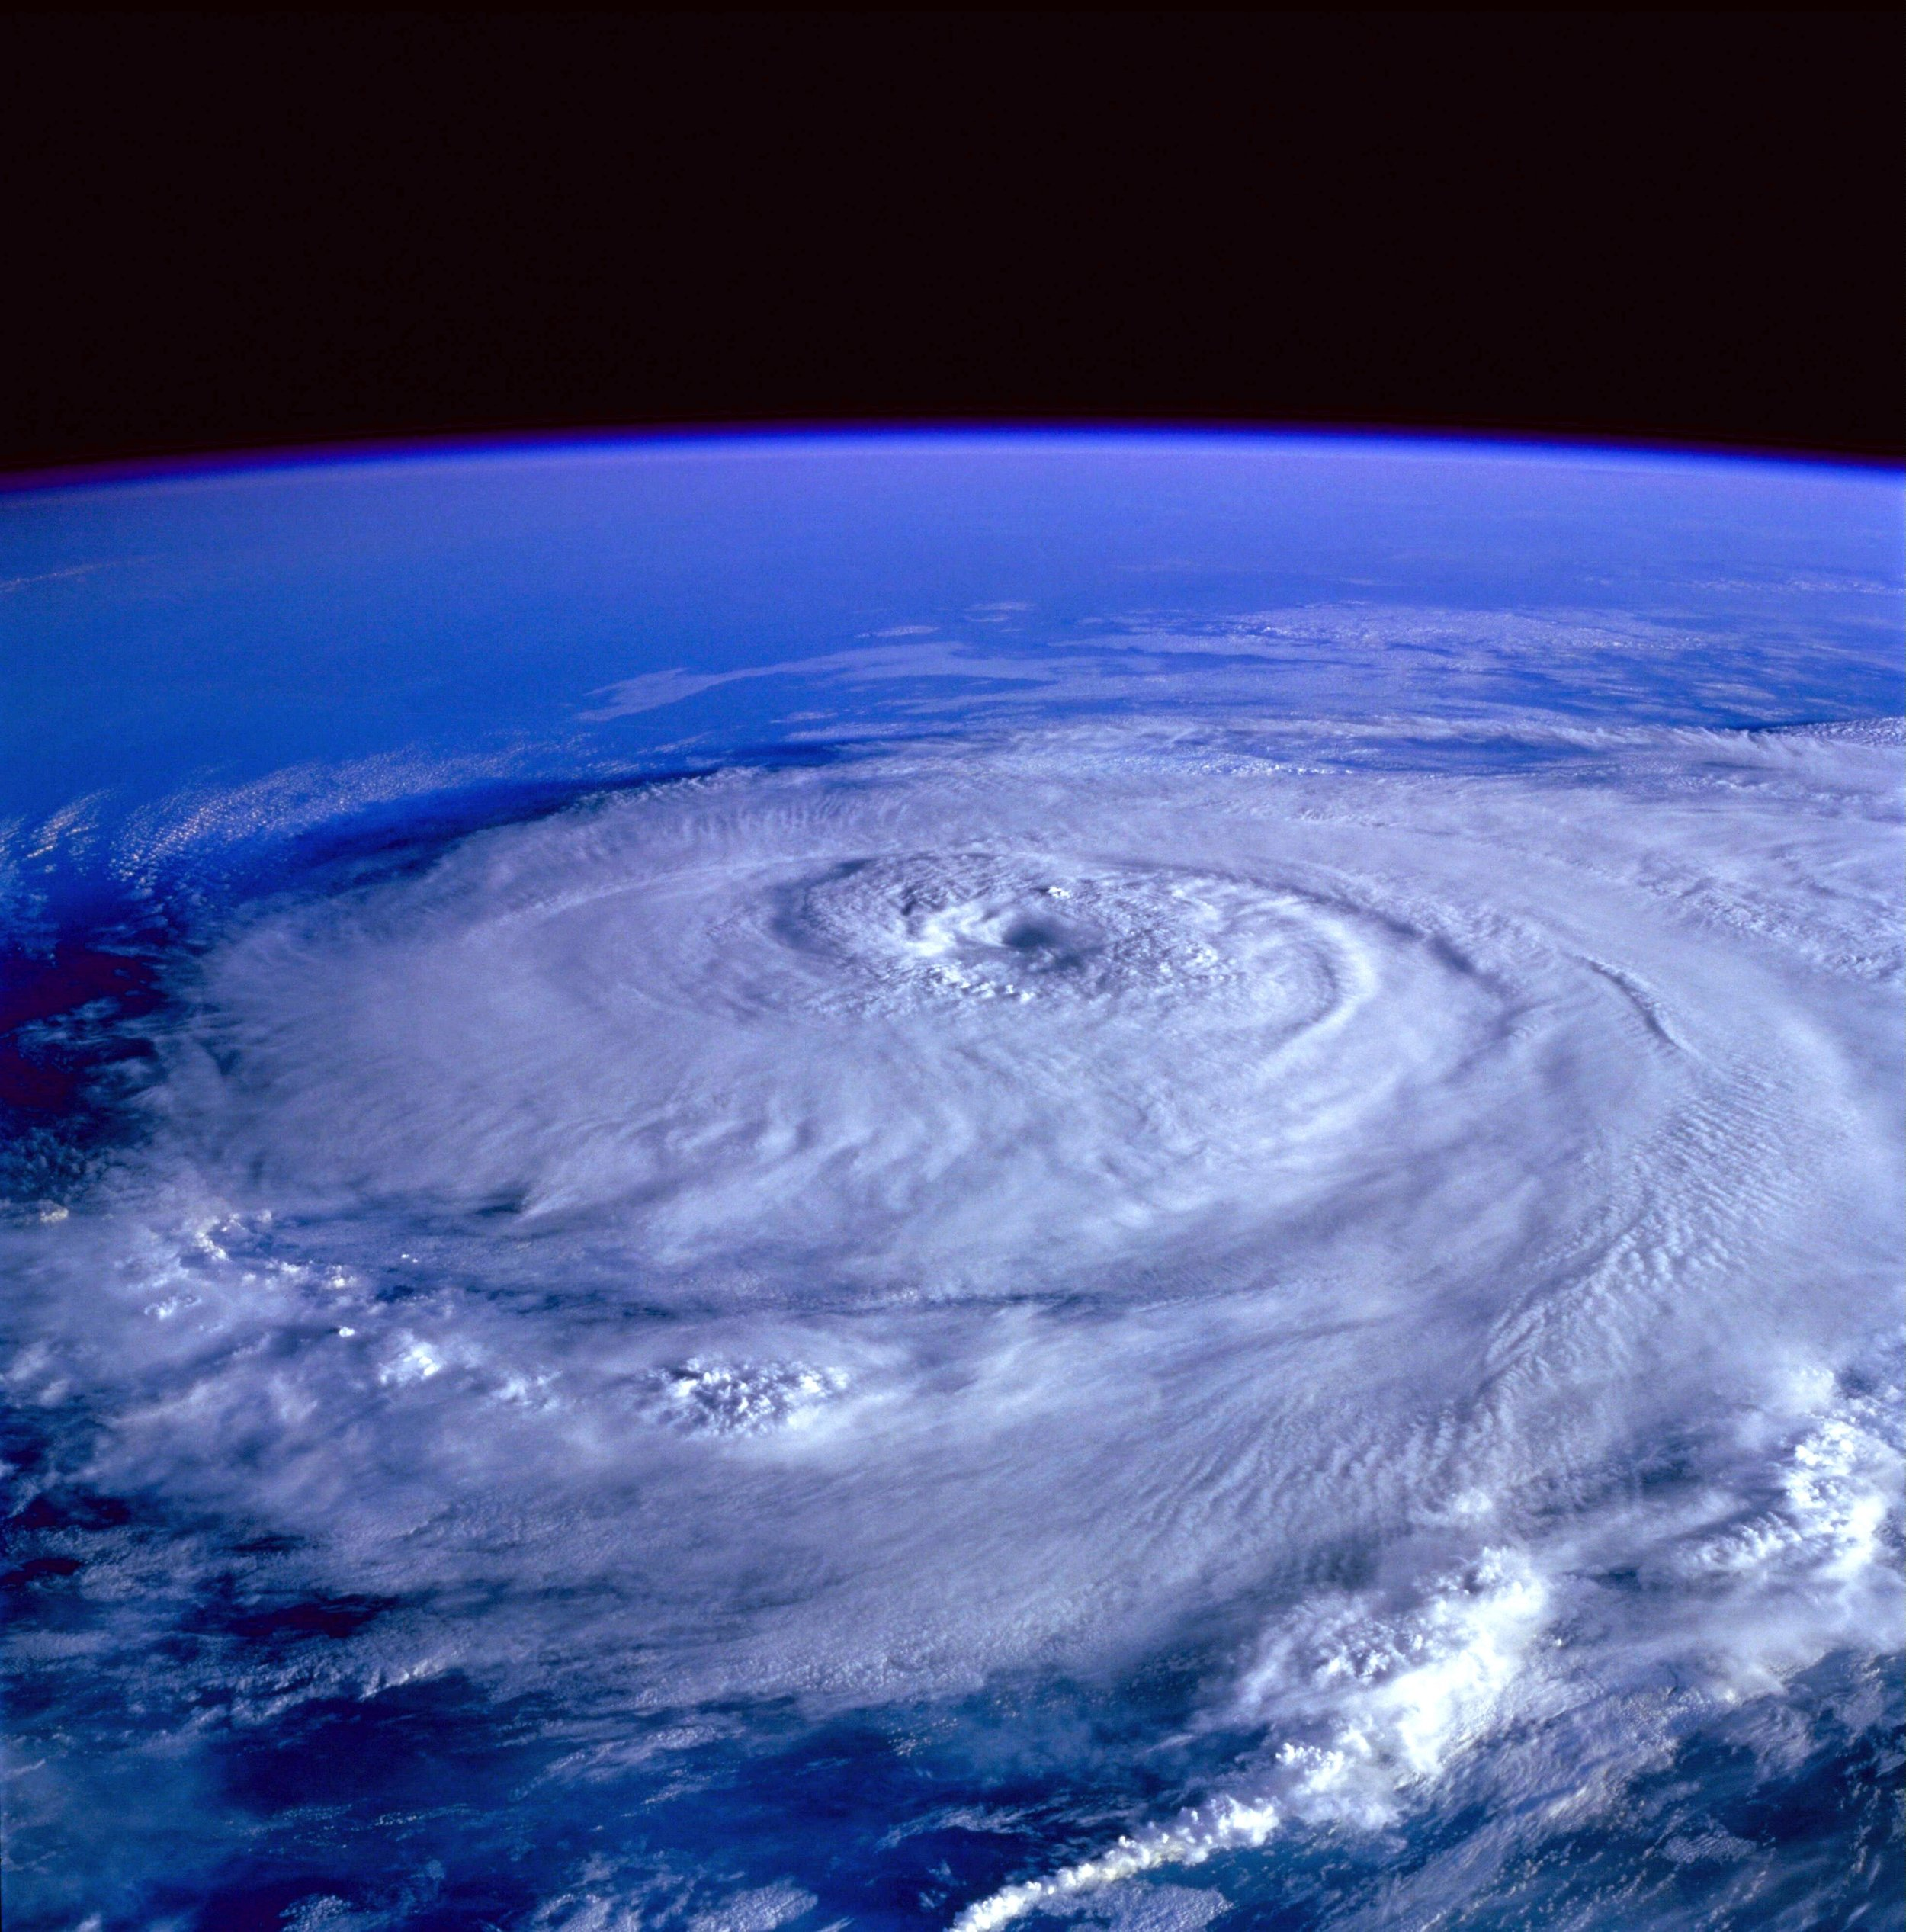 Storm Surges and Flash Flooding - A Few Employment Law Issues During Natural Disasters